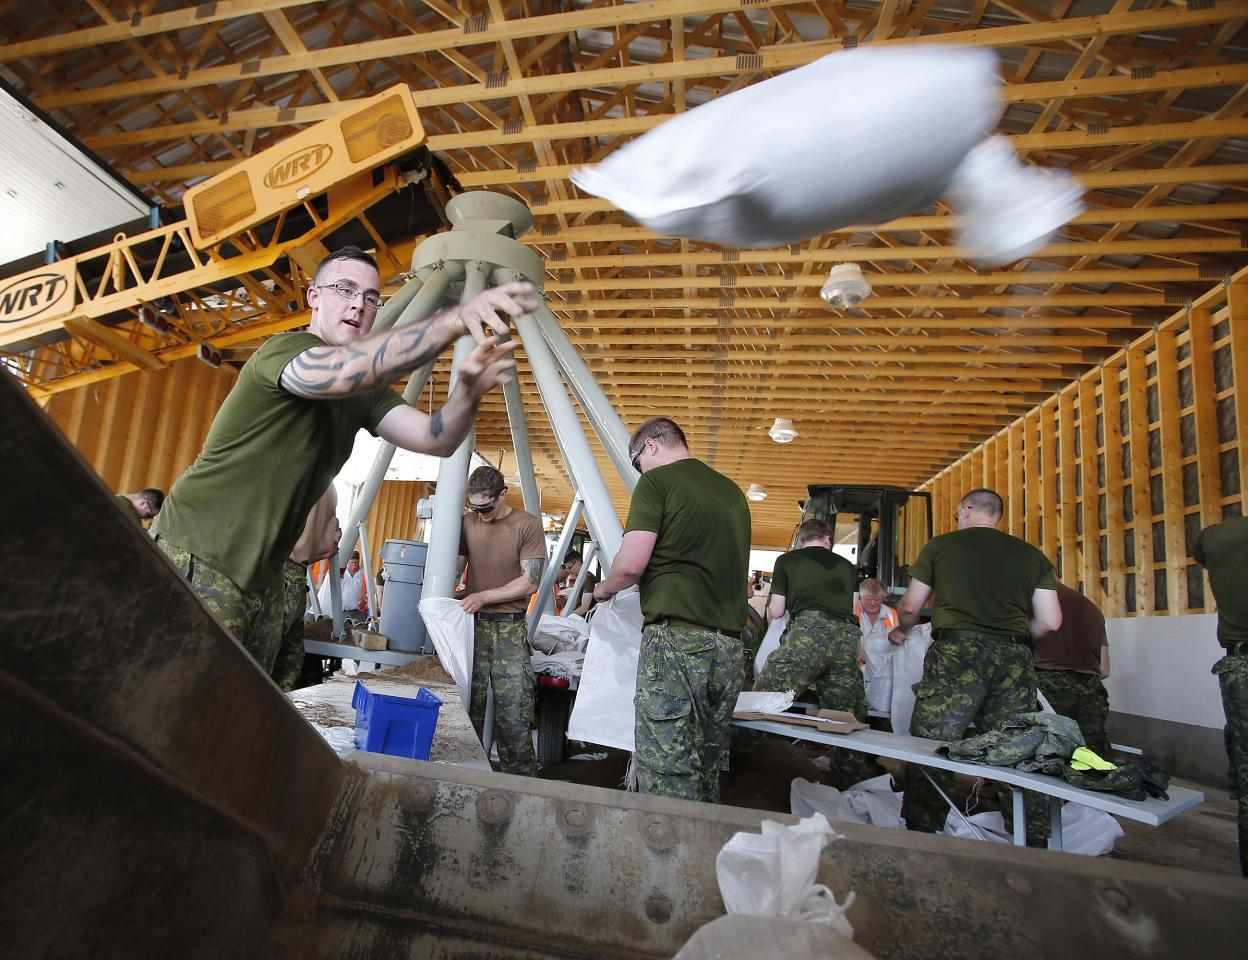 Bombardier Jonathan Kaiser and others work to fill and load sandbags in Portage La Prairie, Manitoba, Saturday, July 5, 2014. Tropical storm Arthur hit Canada's Maritime provinces with near-hurricane strength winds and torrential rains, knocking out power to nearly 200,000 customers. (AP Photo/The Canadian Press, John Woods)